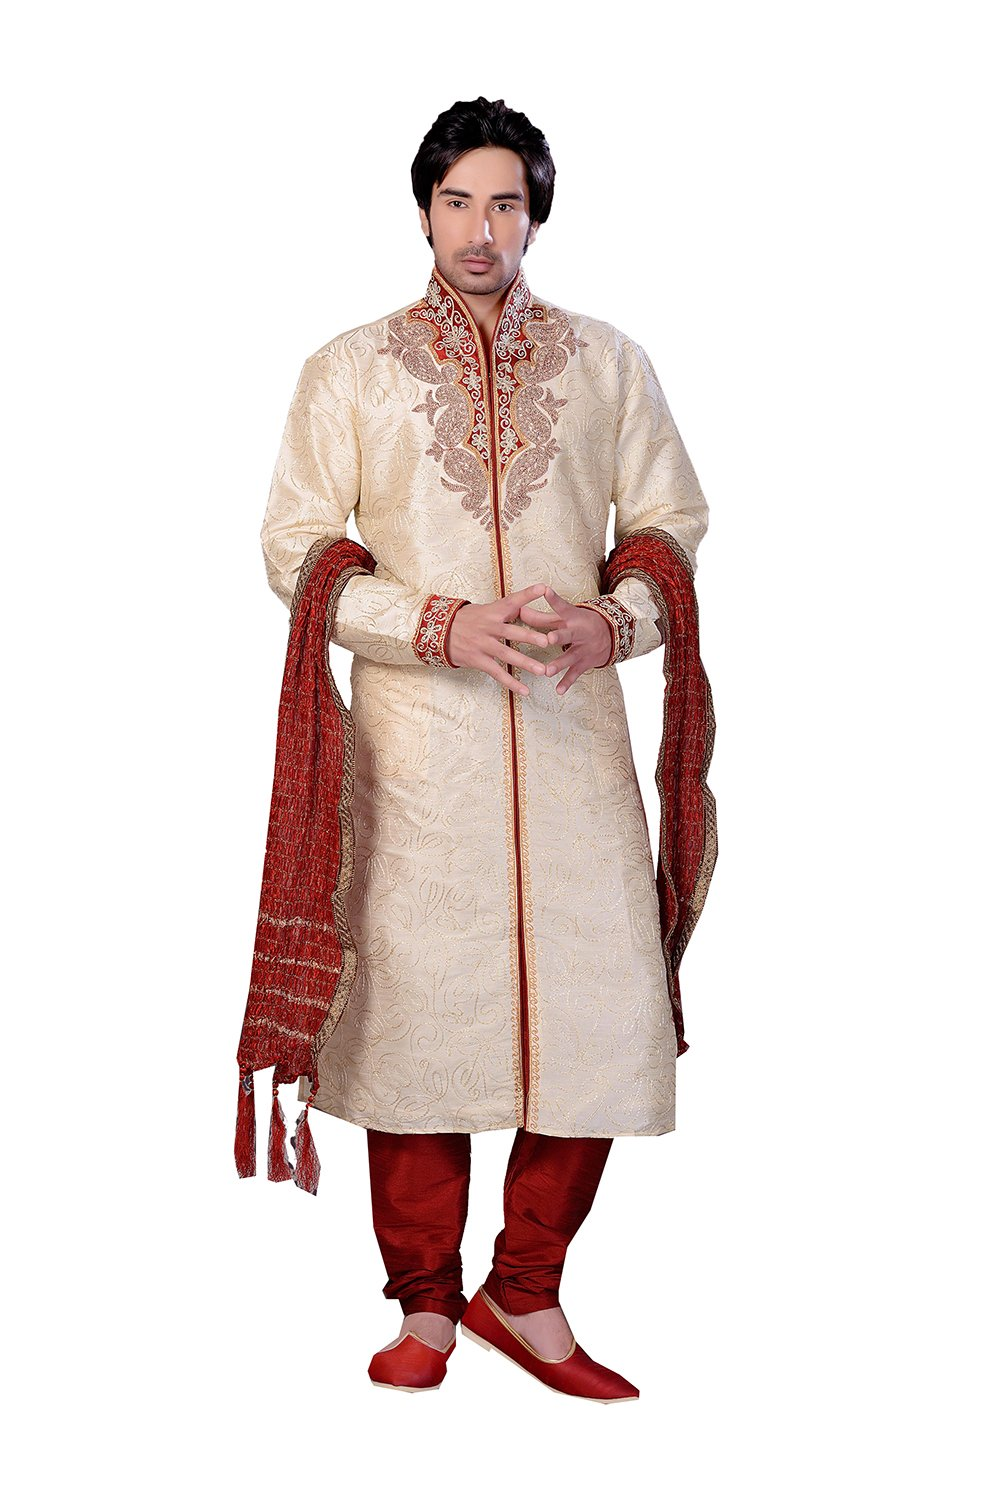 daindiashop-USA Indian Kurta Pajama For Men Wedding Partywear Christmas Festival Reception Sangeet Dress